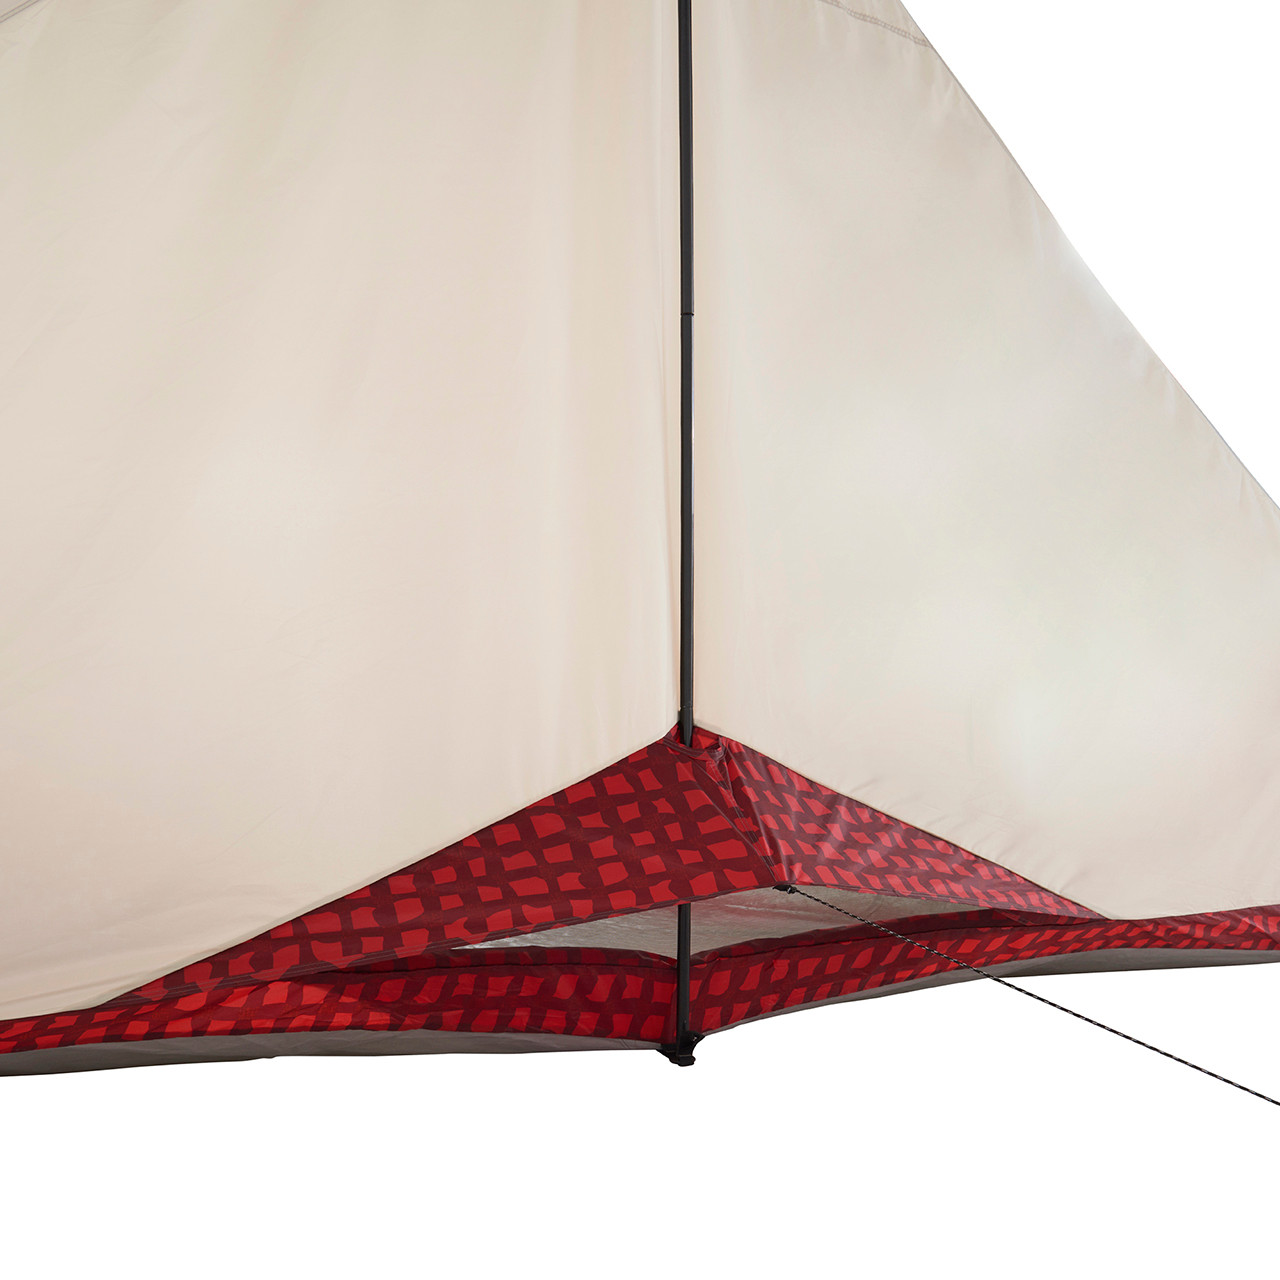 Back view of the Wenzel Ivanhoe 6 tent with the screen vent open and the guy line extended